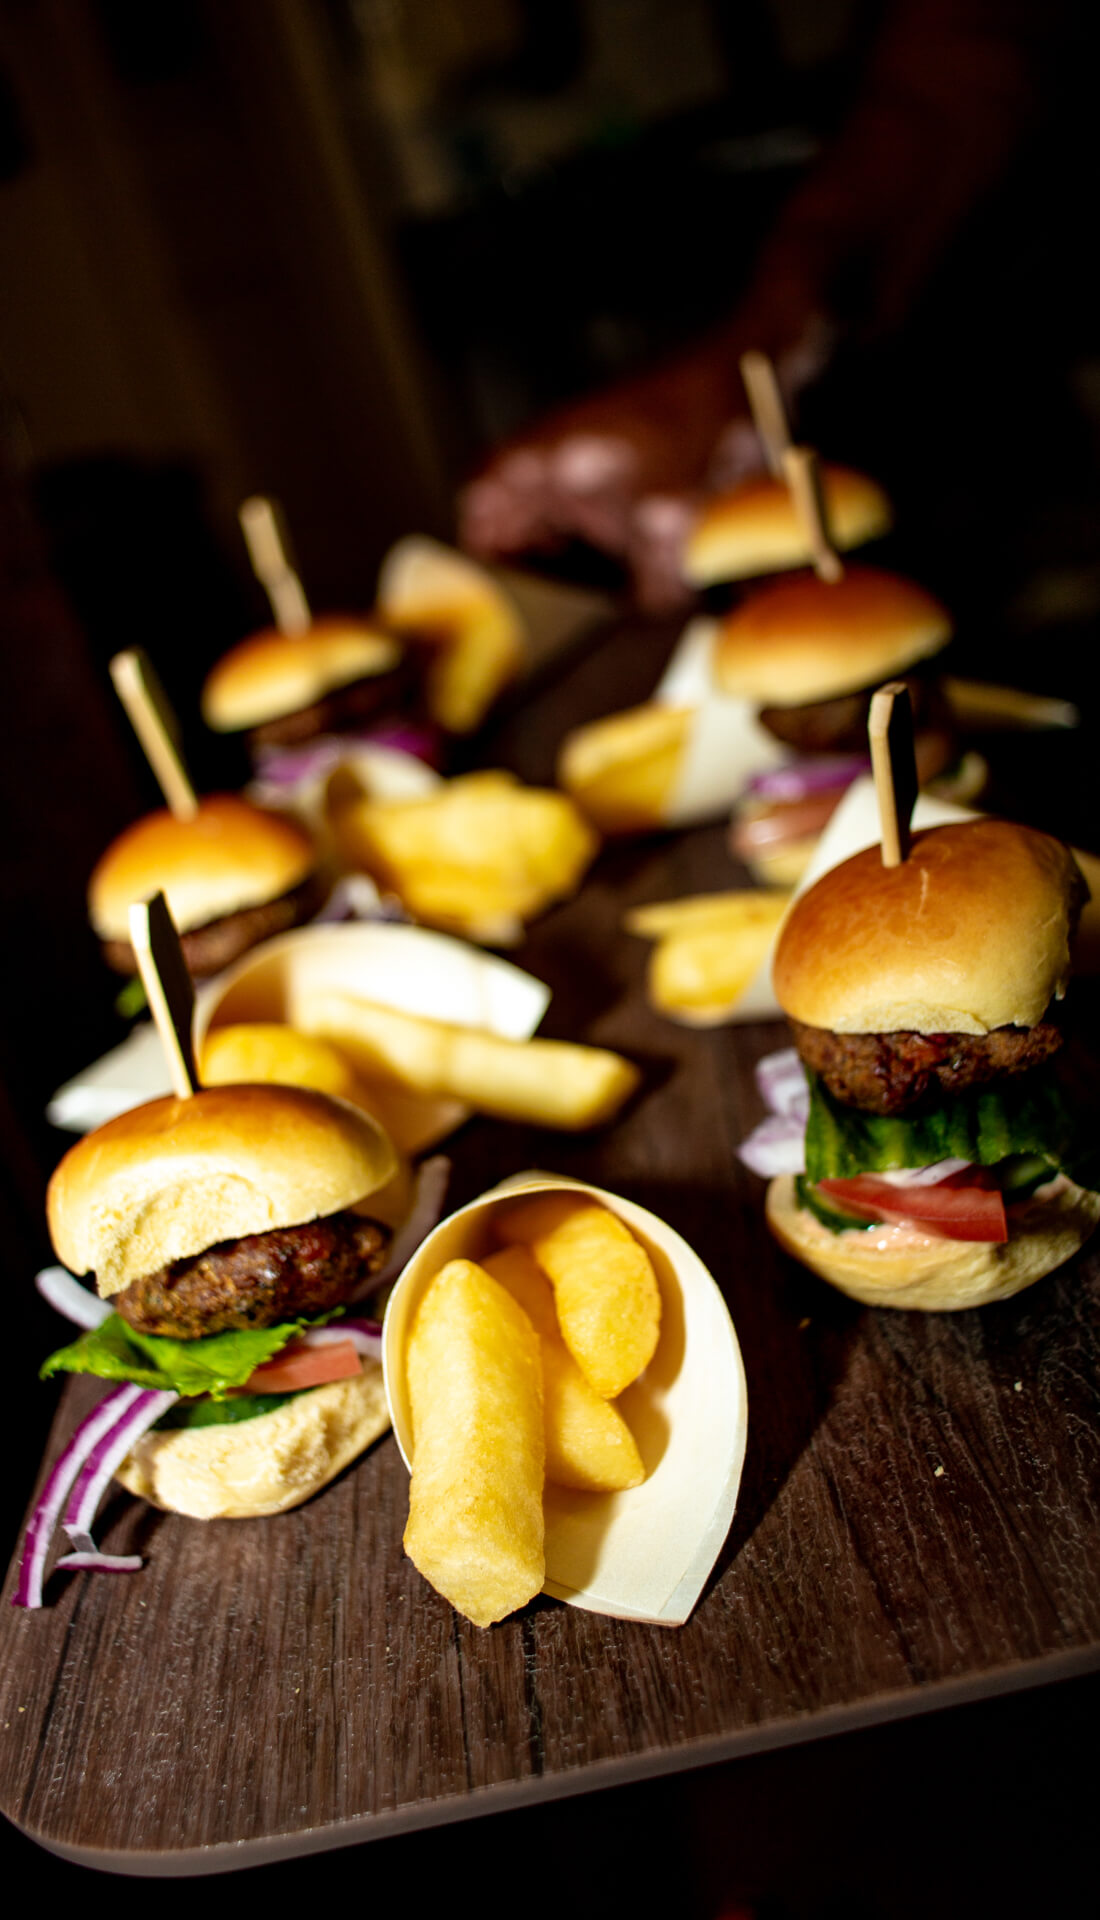 Commercial photographer Birmingham, Commercial photographer Midlands, food photography, mini burgers and chips - Anastasia Jobson